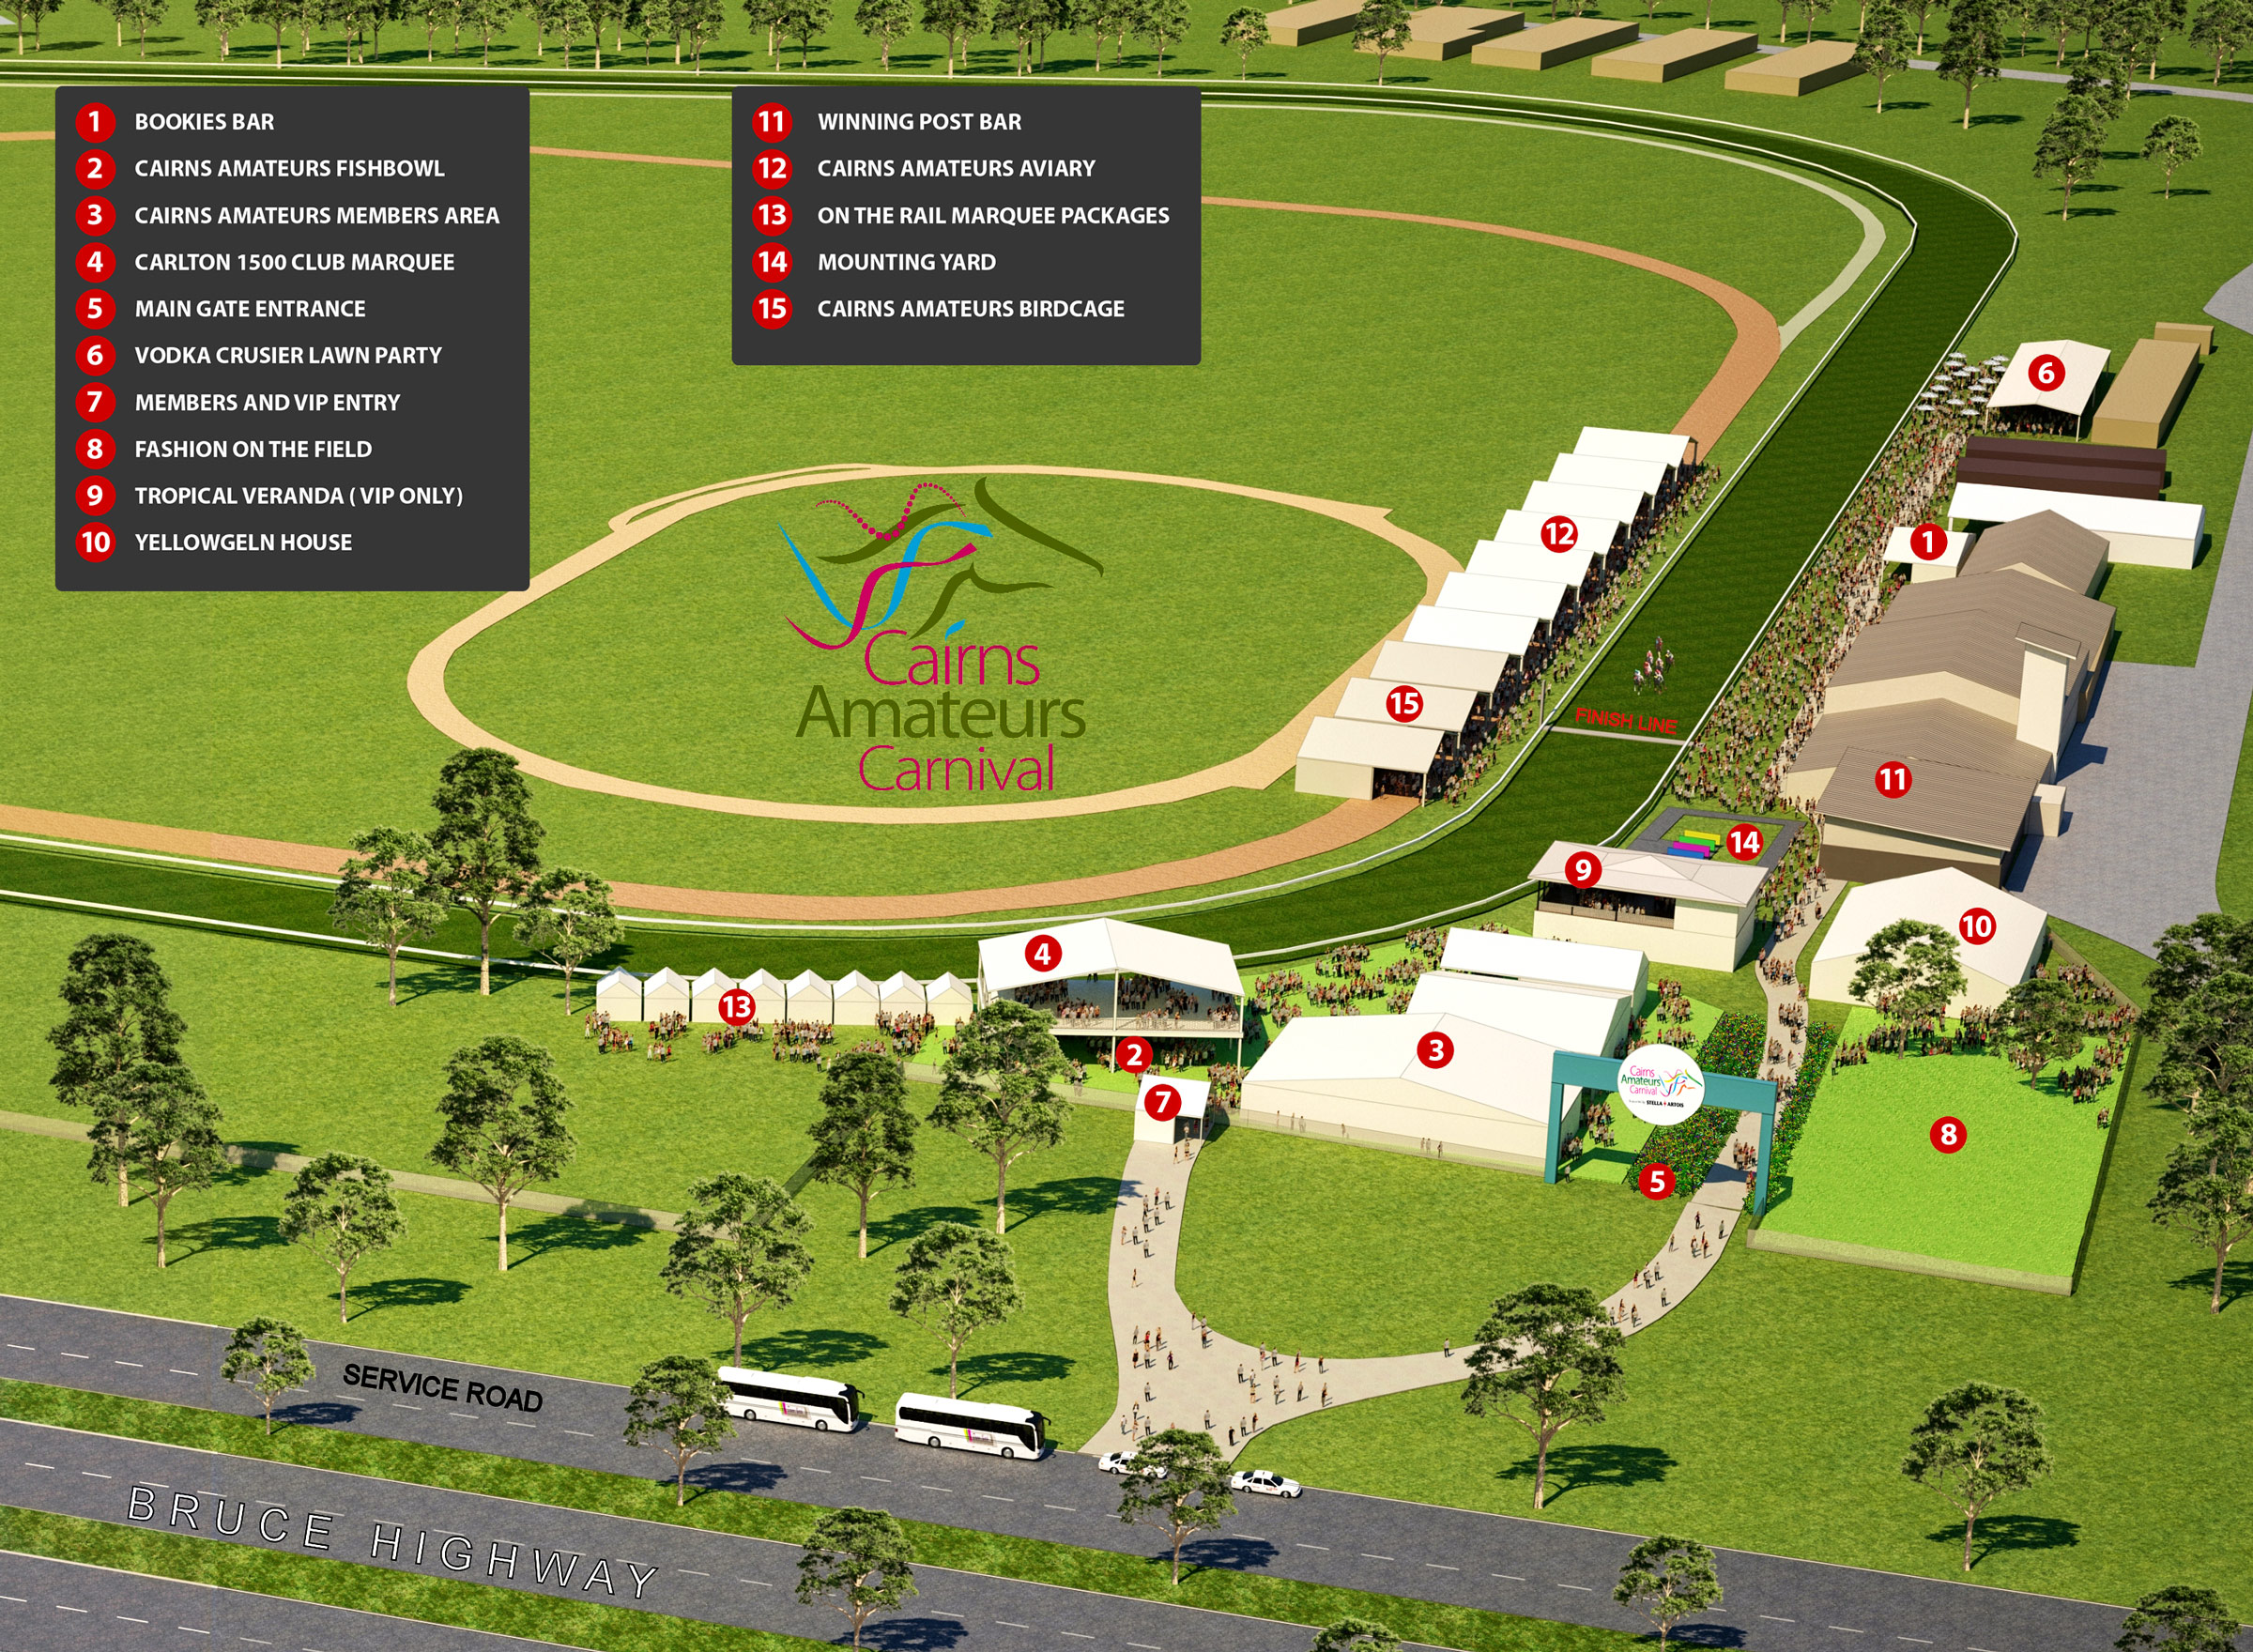 Cairns Amateurs Carnival Map